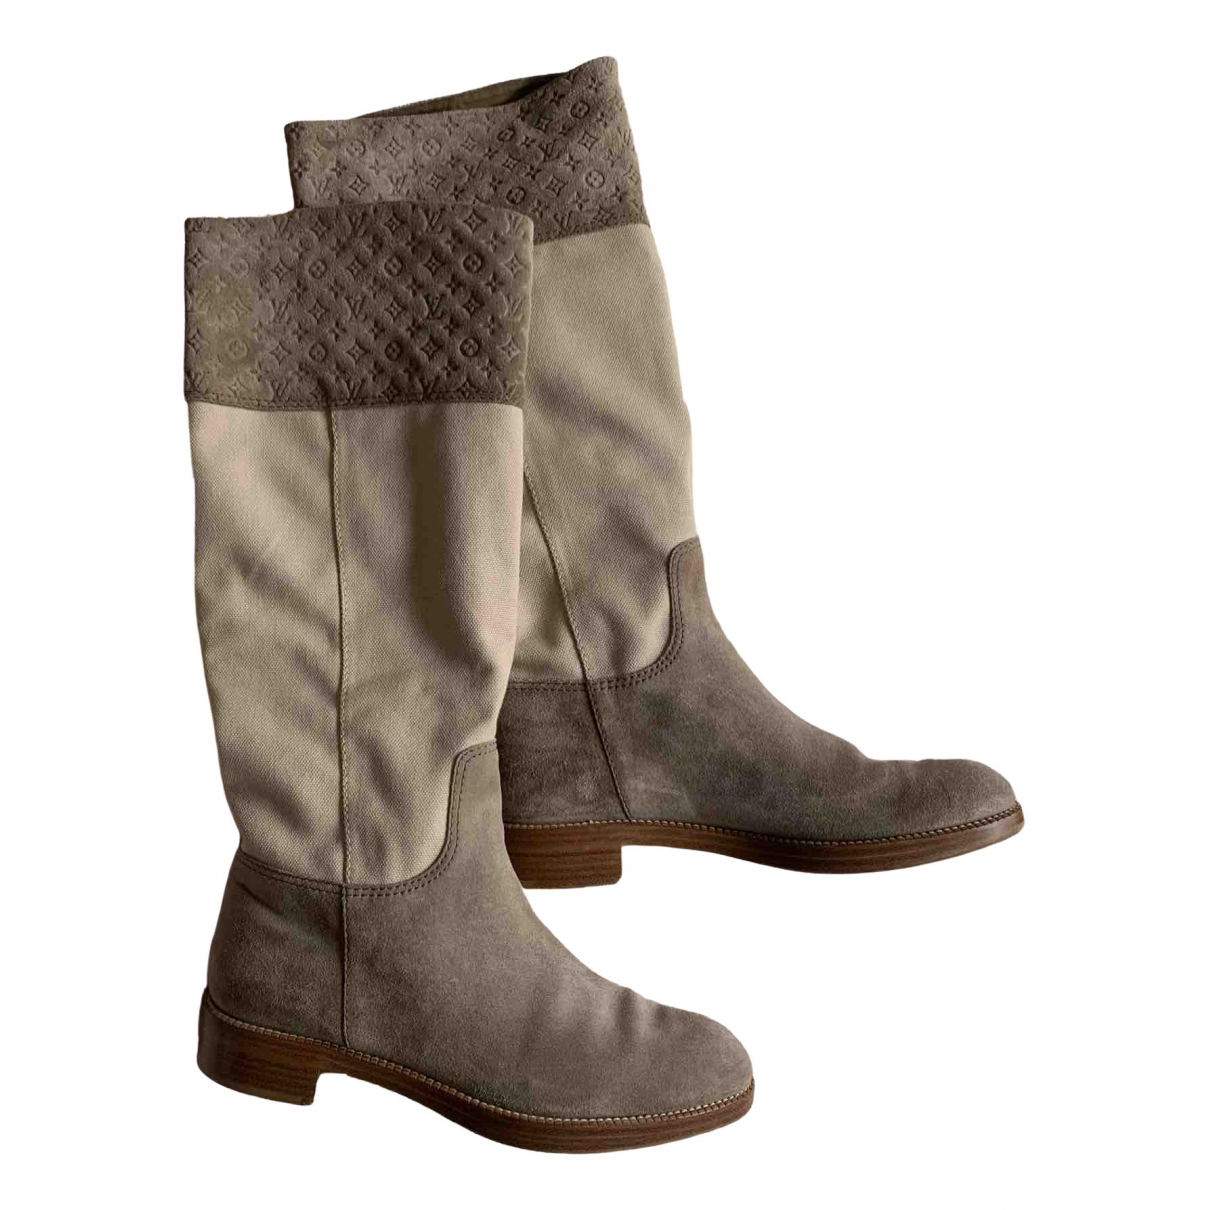 Louis Vuitton \N Stiefel in  Beige Veloursleder